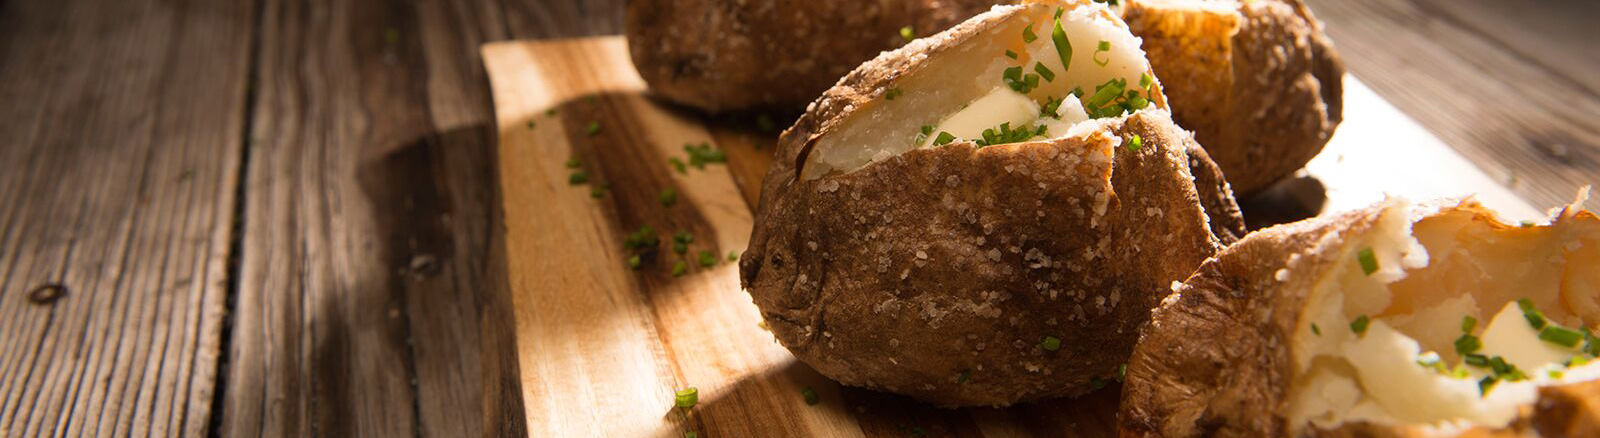 Salted Baked Potatoes